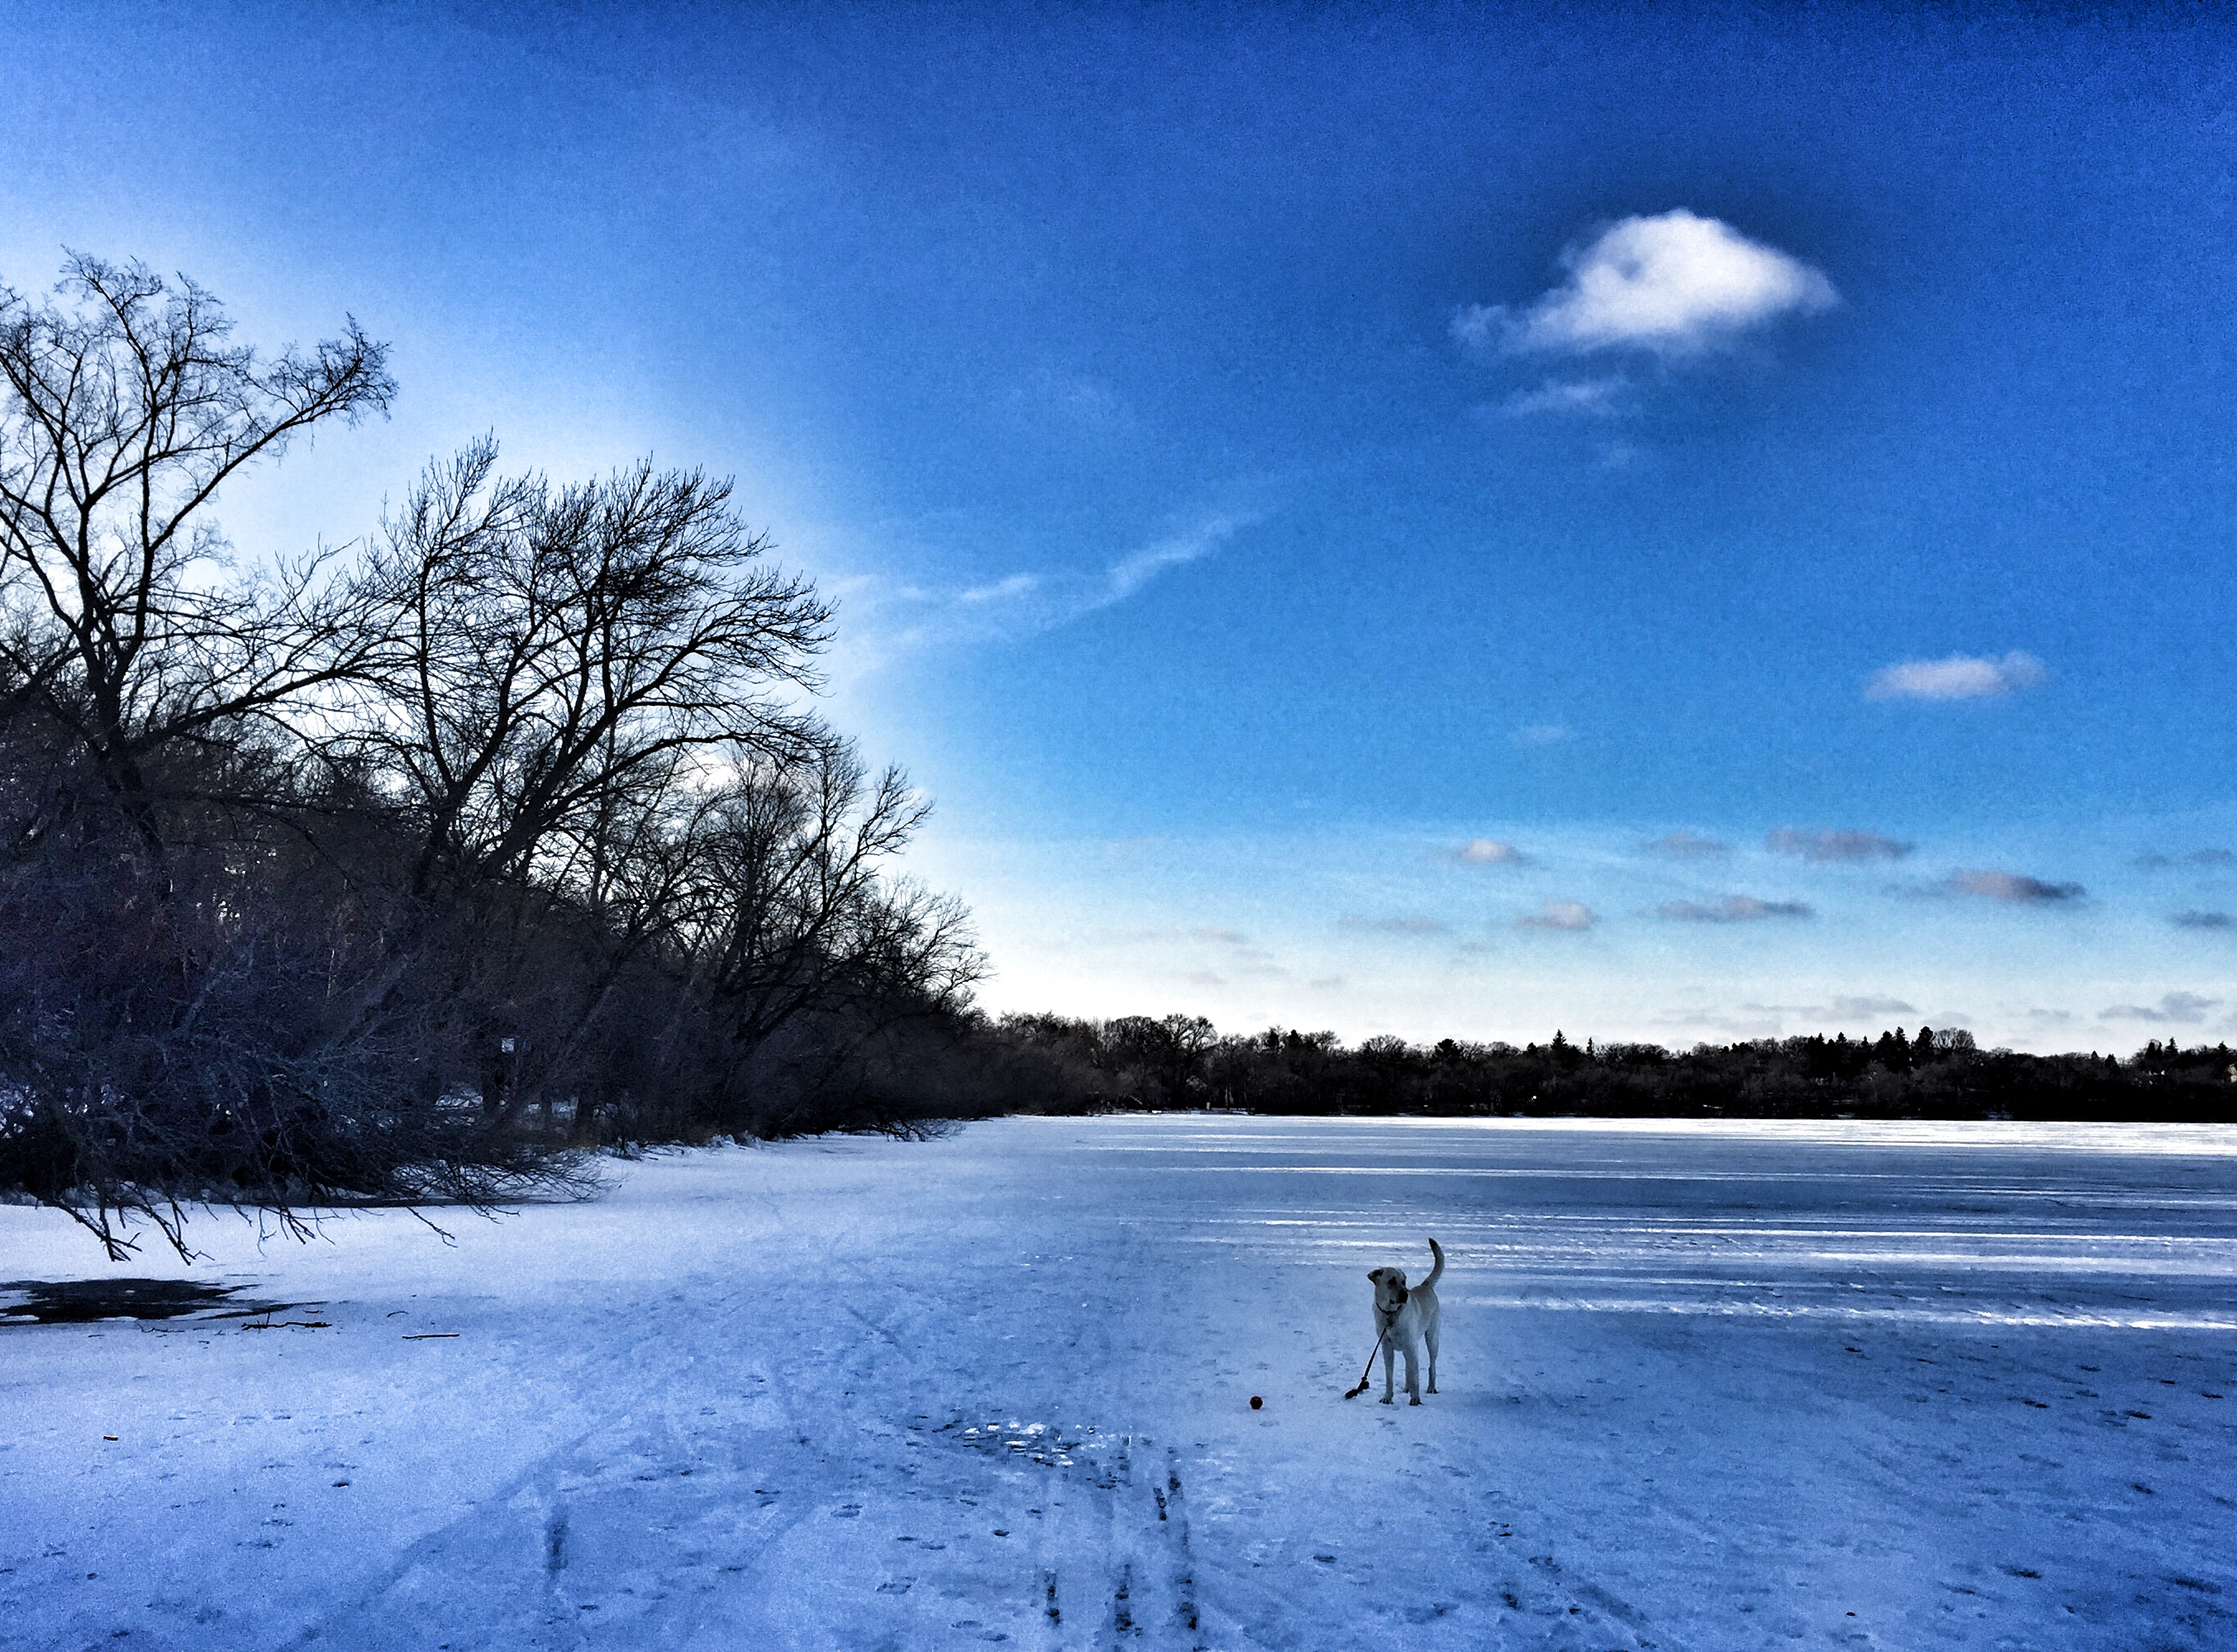 The Solitude of a Minnesota Winter | Thirdeyemom